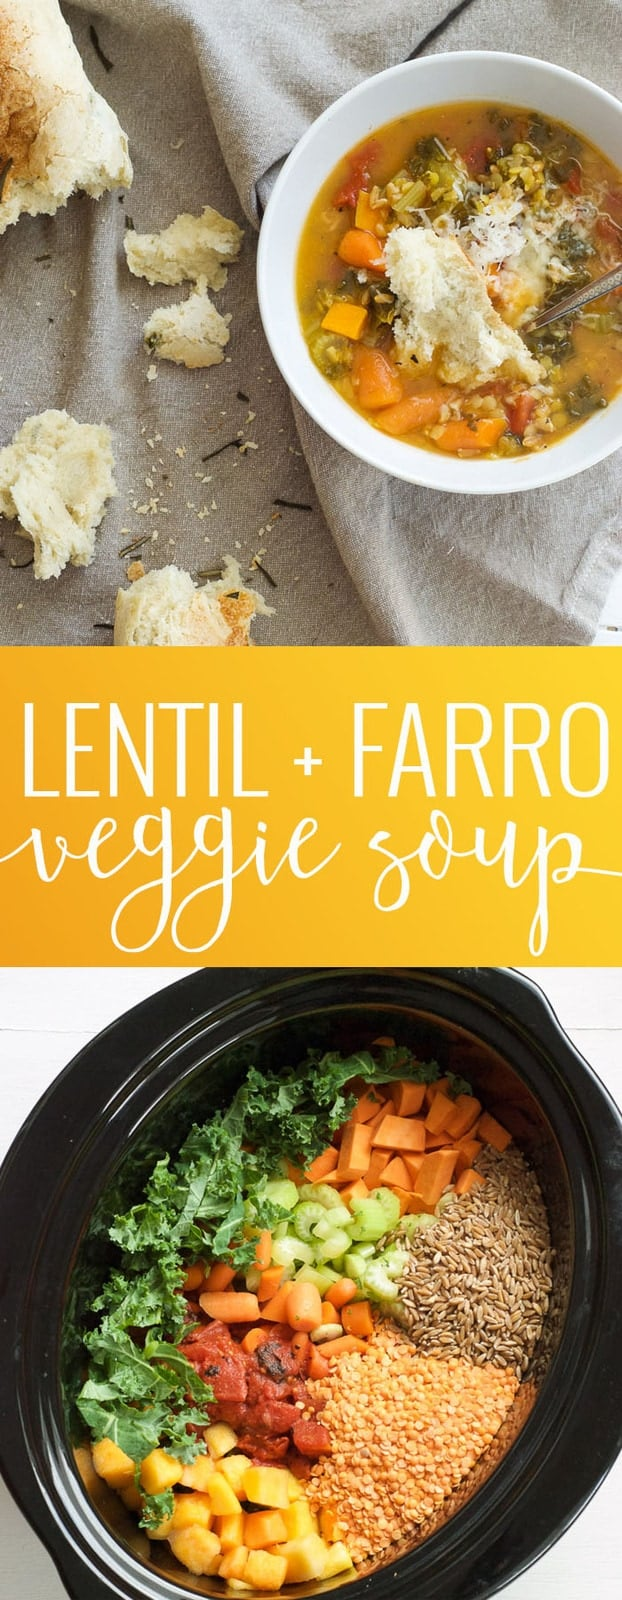 Lentil and Farro Vegetable Soup | homemade vegetable soup | vegetable soup recipe | easy soup recipes | homemade soup recipes | fall recipe ideas | cold weather recipes | simple soup recipes | easy dinner recipes || Oh So Delicioso #vegetablesoup